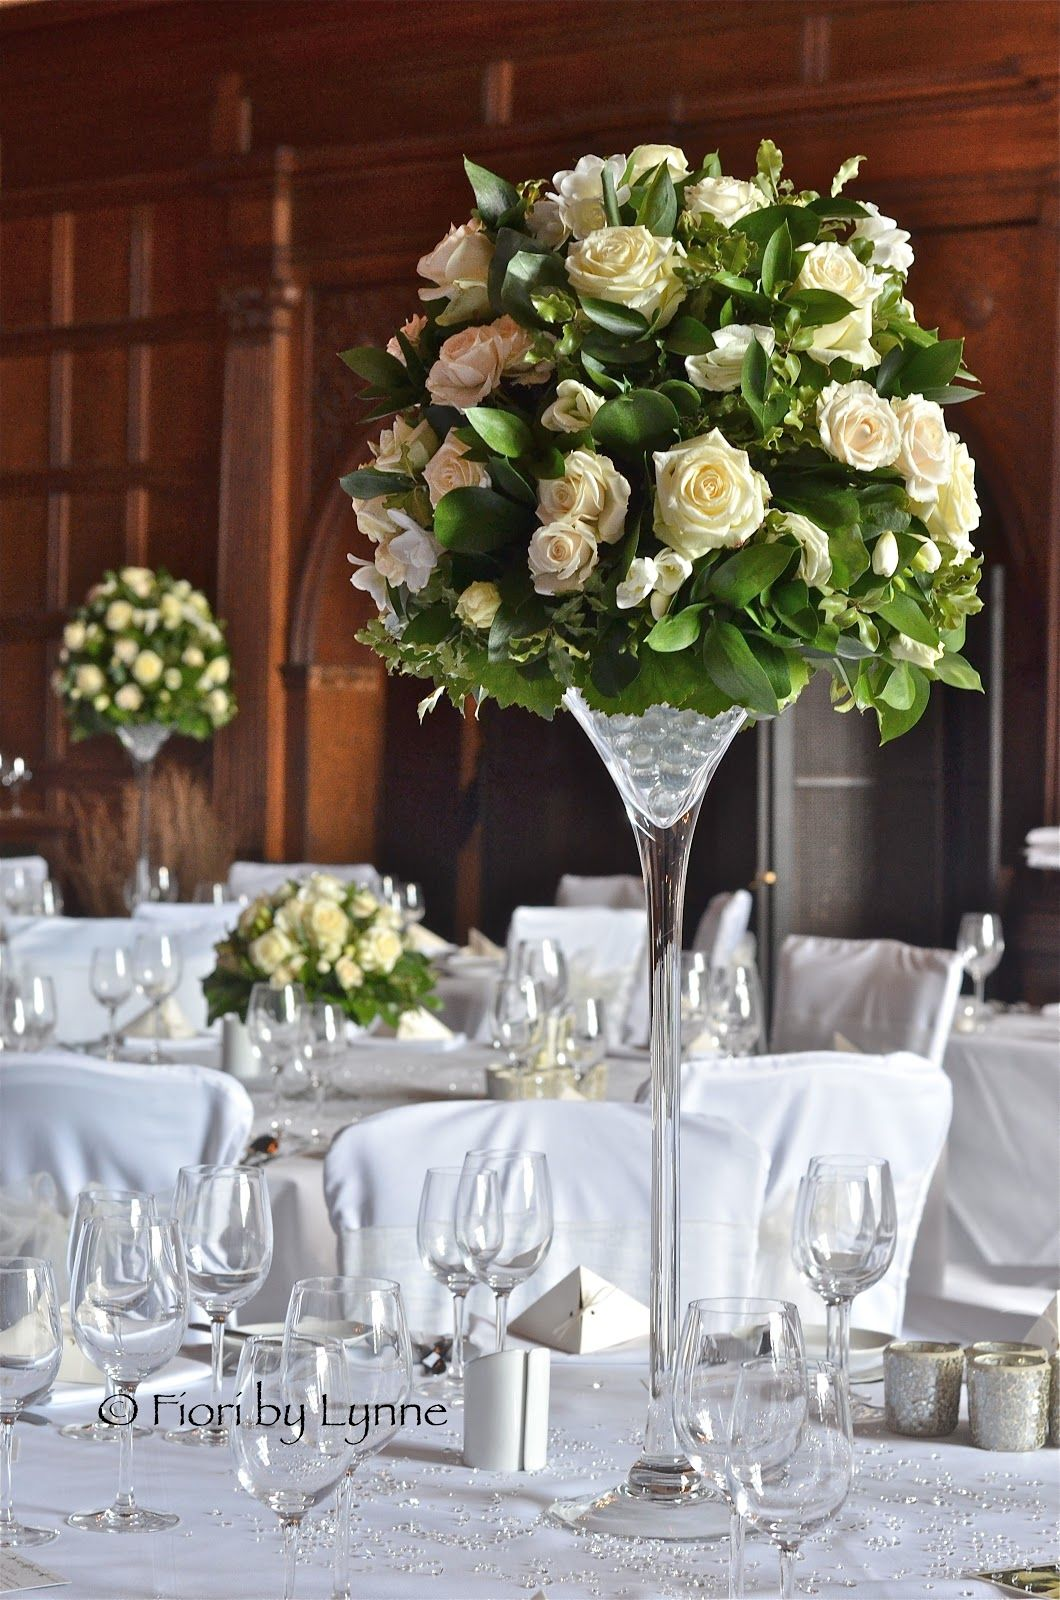 Tall Table Centres Of Mixed Roses And Lisianthus In Cocktail Vases